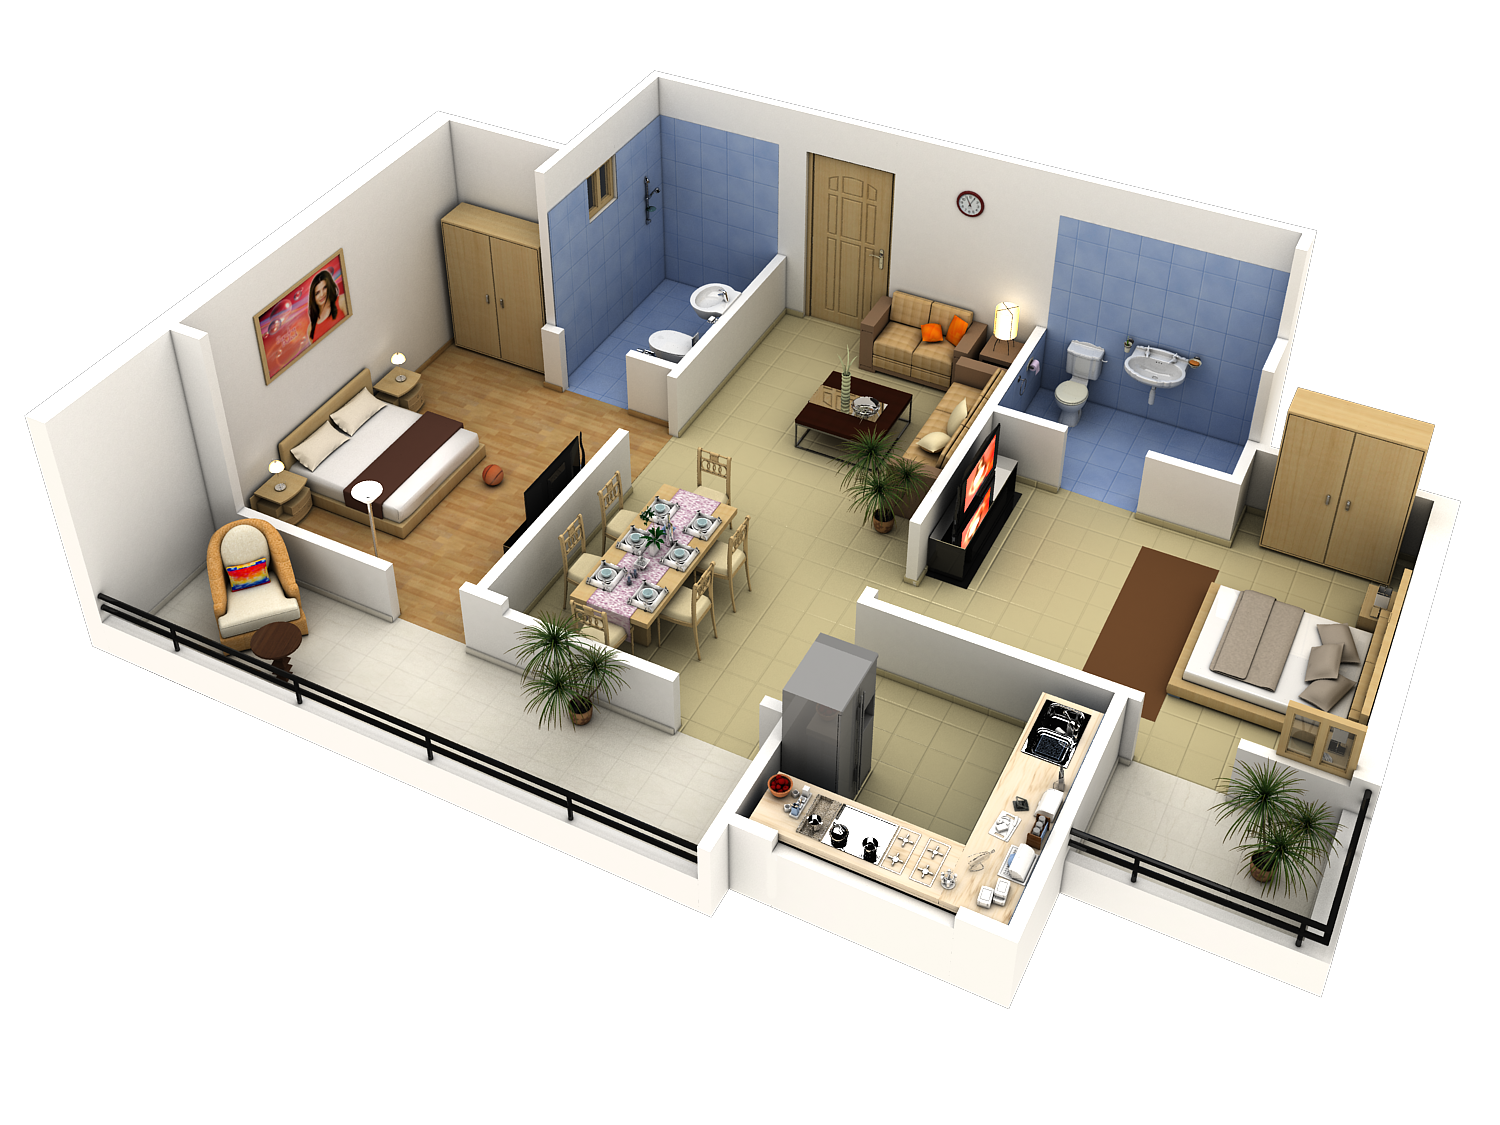 Apartment floor plan cad block apartment design ideas for 2 bedroom apartment layout ideas